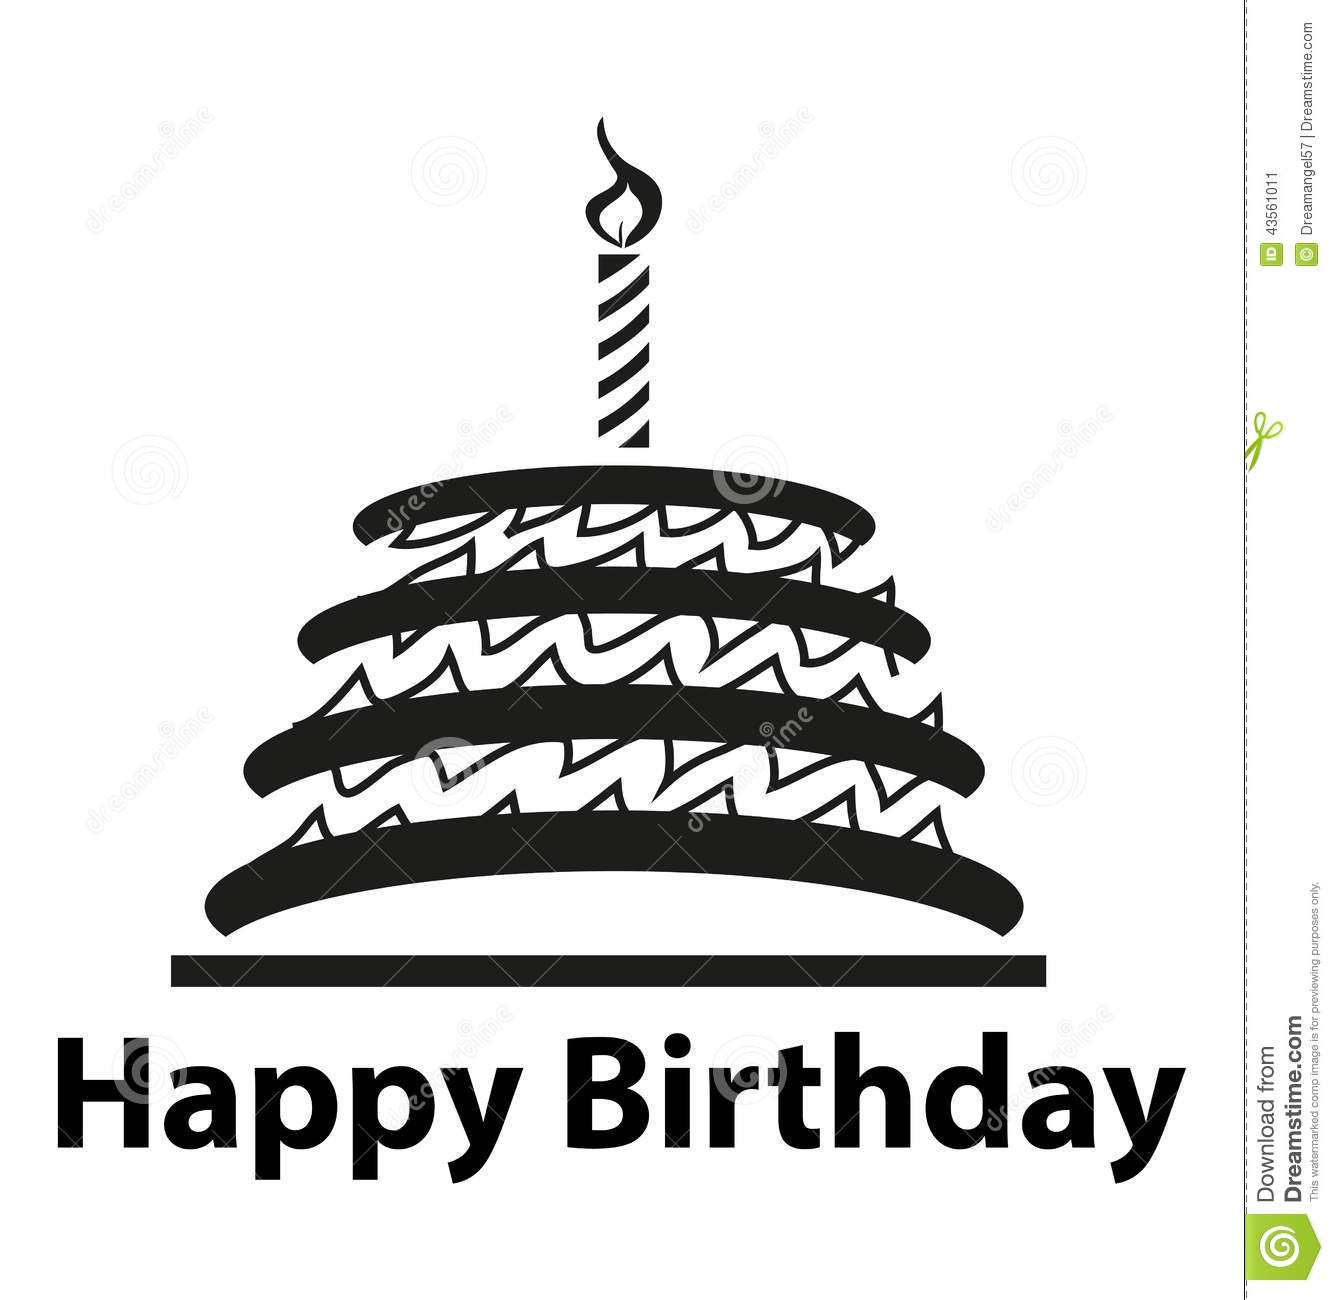 Happy Birthday Cake Stock Vector Illustration Of Design 43561011